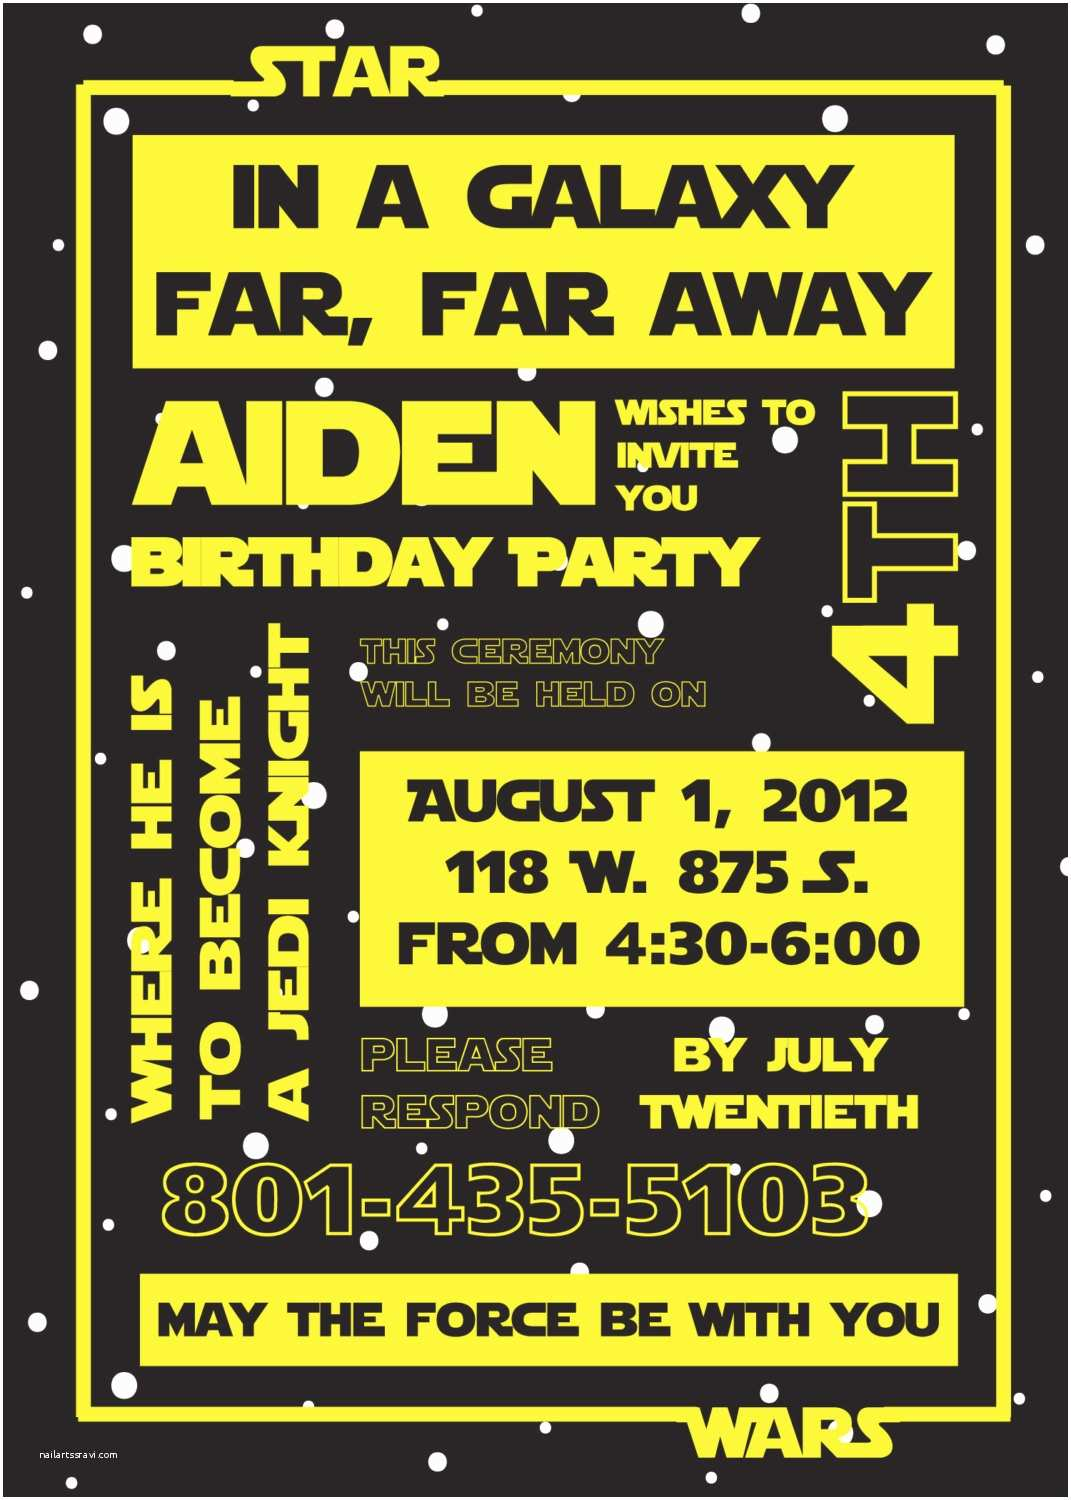 Star Wars Birthday Party Invitations Printable Star Wars Invitation and Party Banner by Susieandme